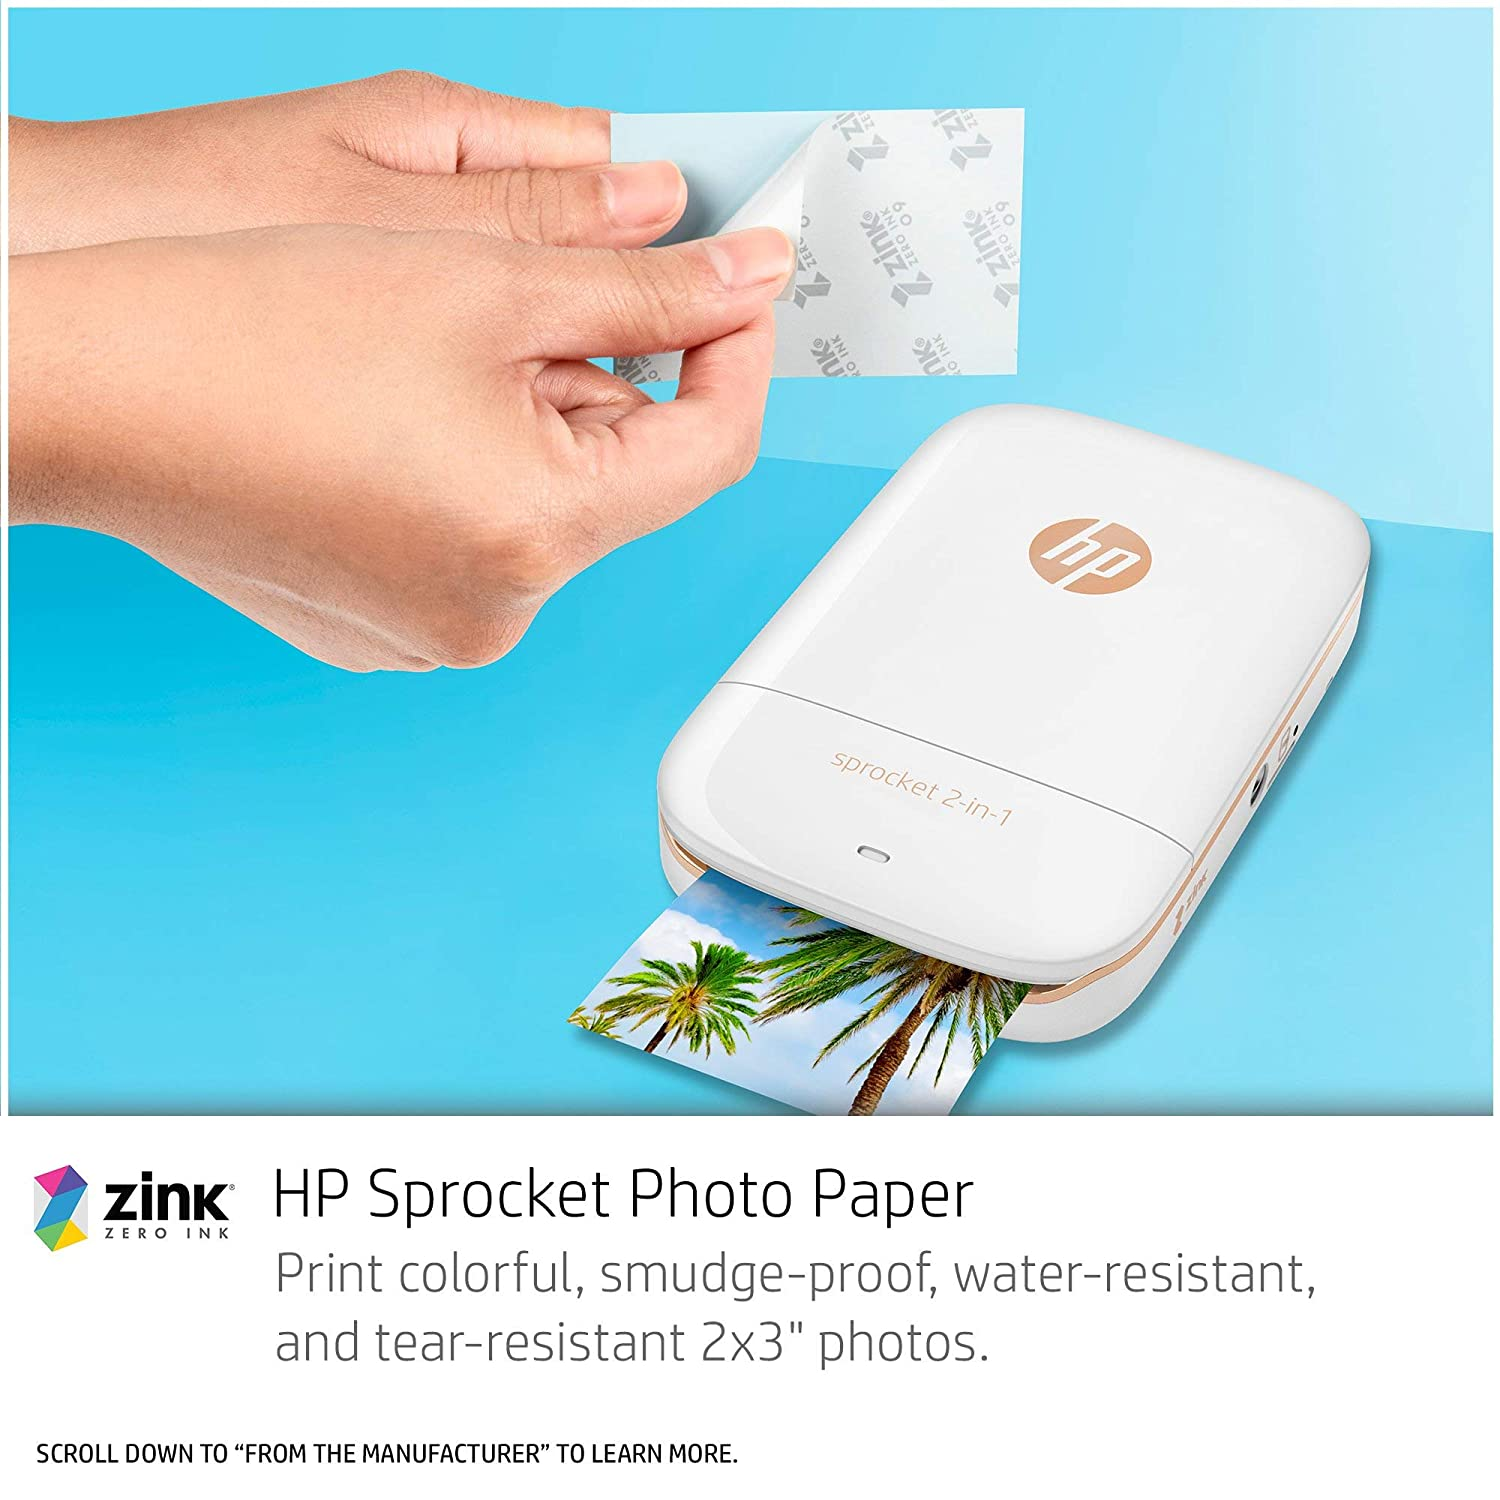 Amazon.com: HP Sprocket 2 en 1 Impresora de fotos portátil y ...